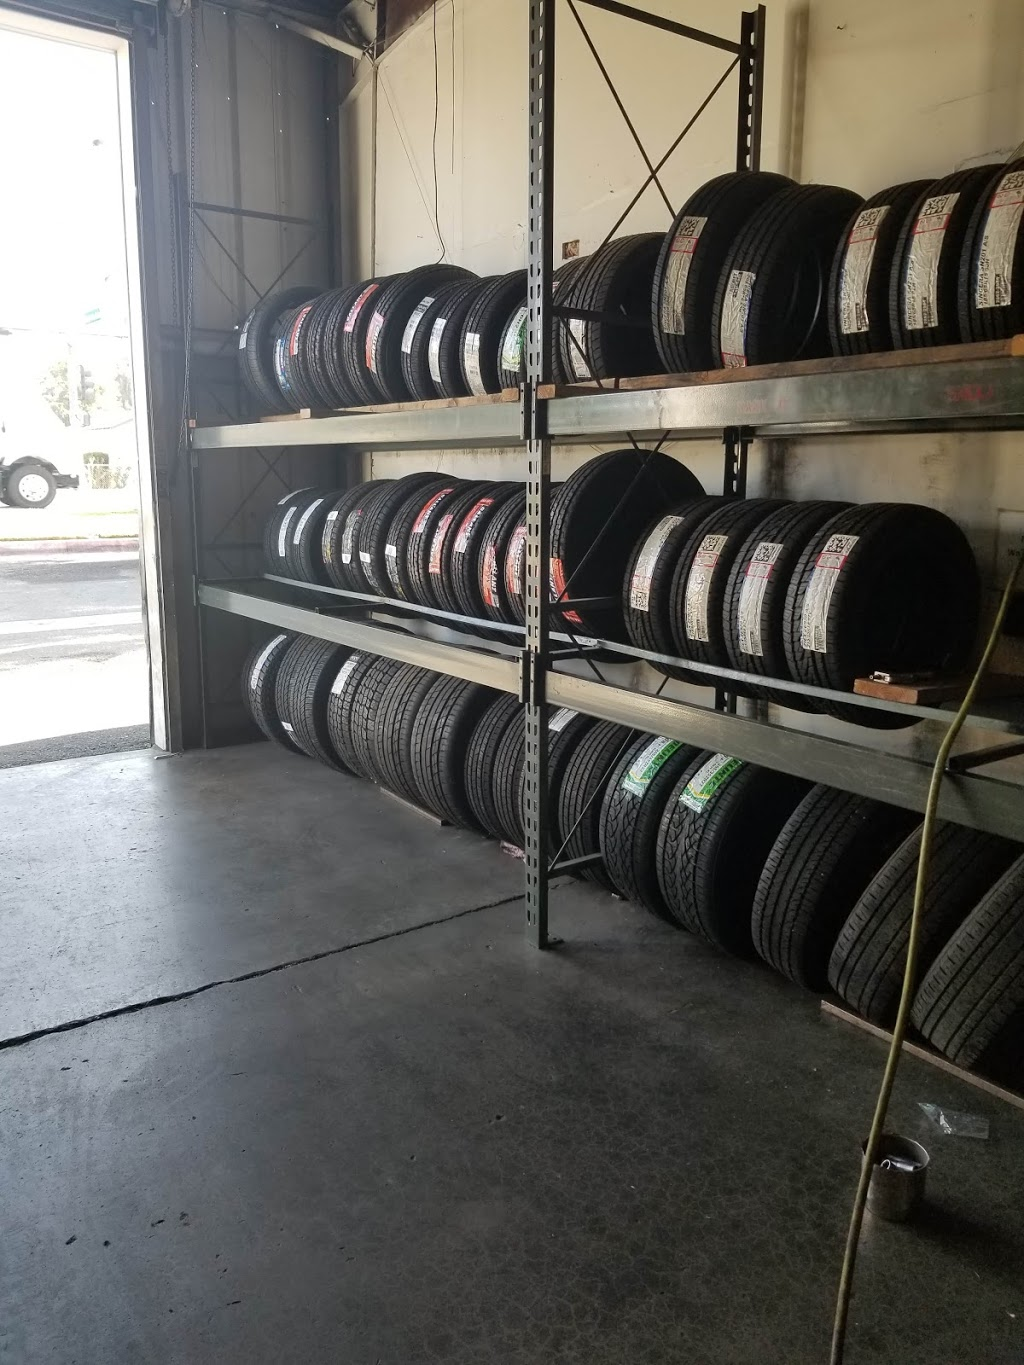 SPS Wheels And Tires - car repair  | Photo 5 of 10 | Address: 3232 Center St, Riverside, CA 92501, USA | Phone: (951) 788-3955